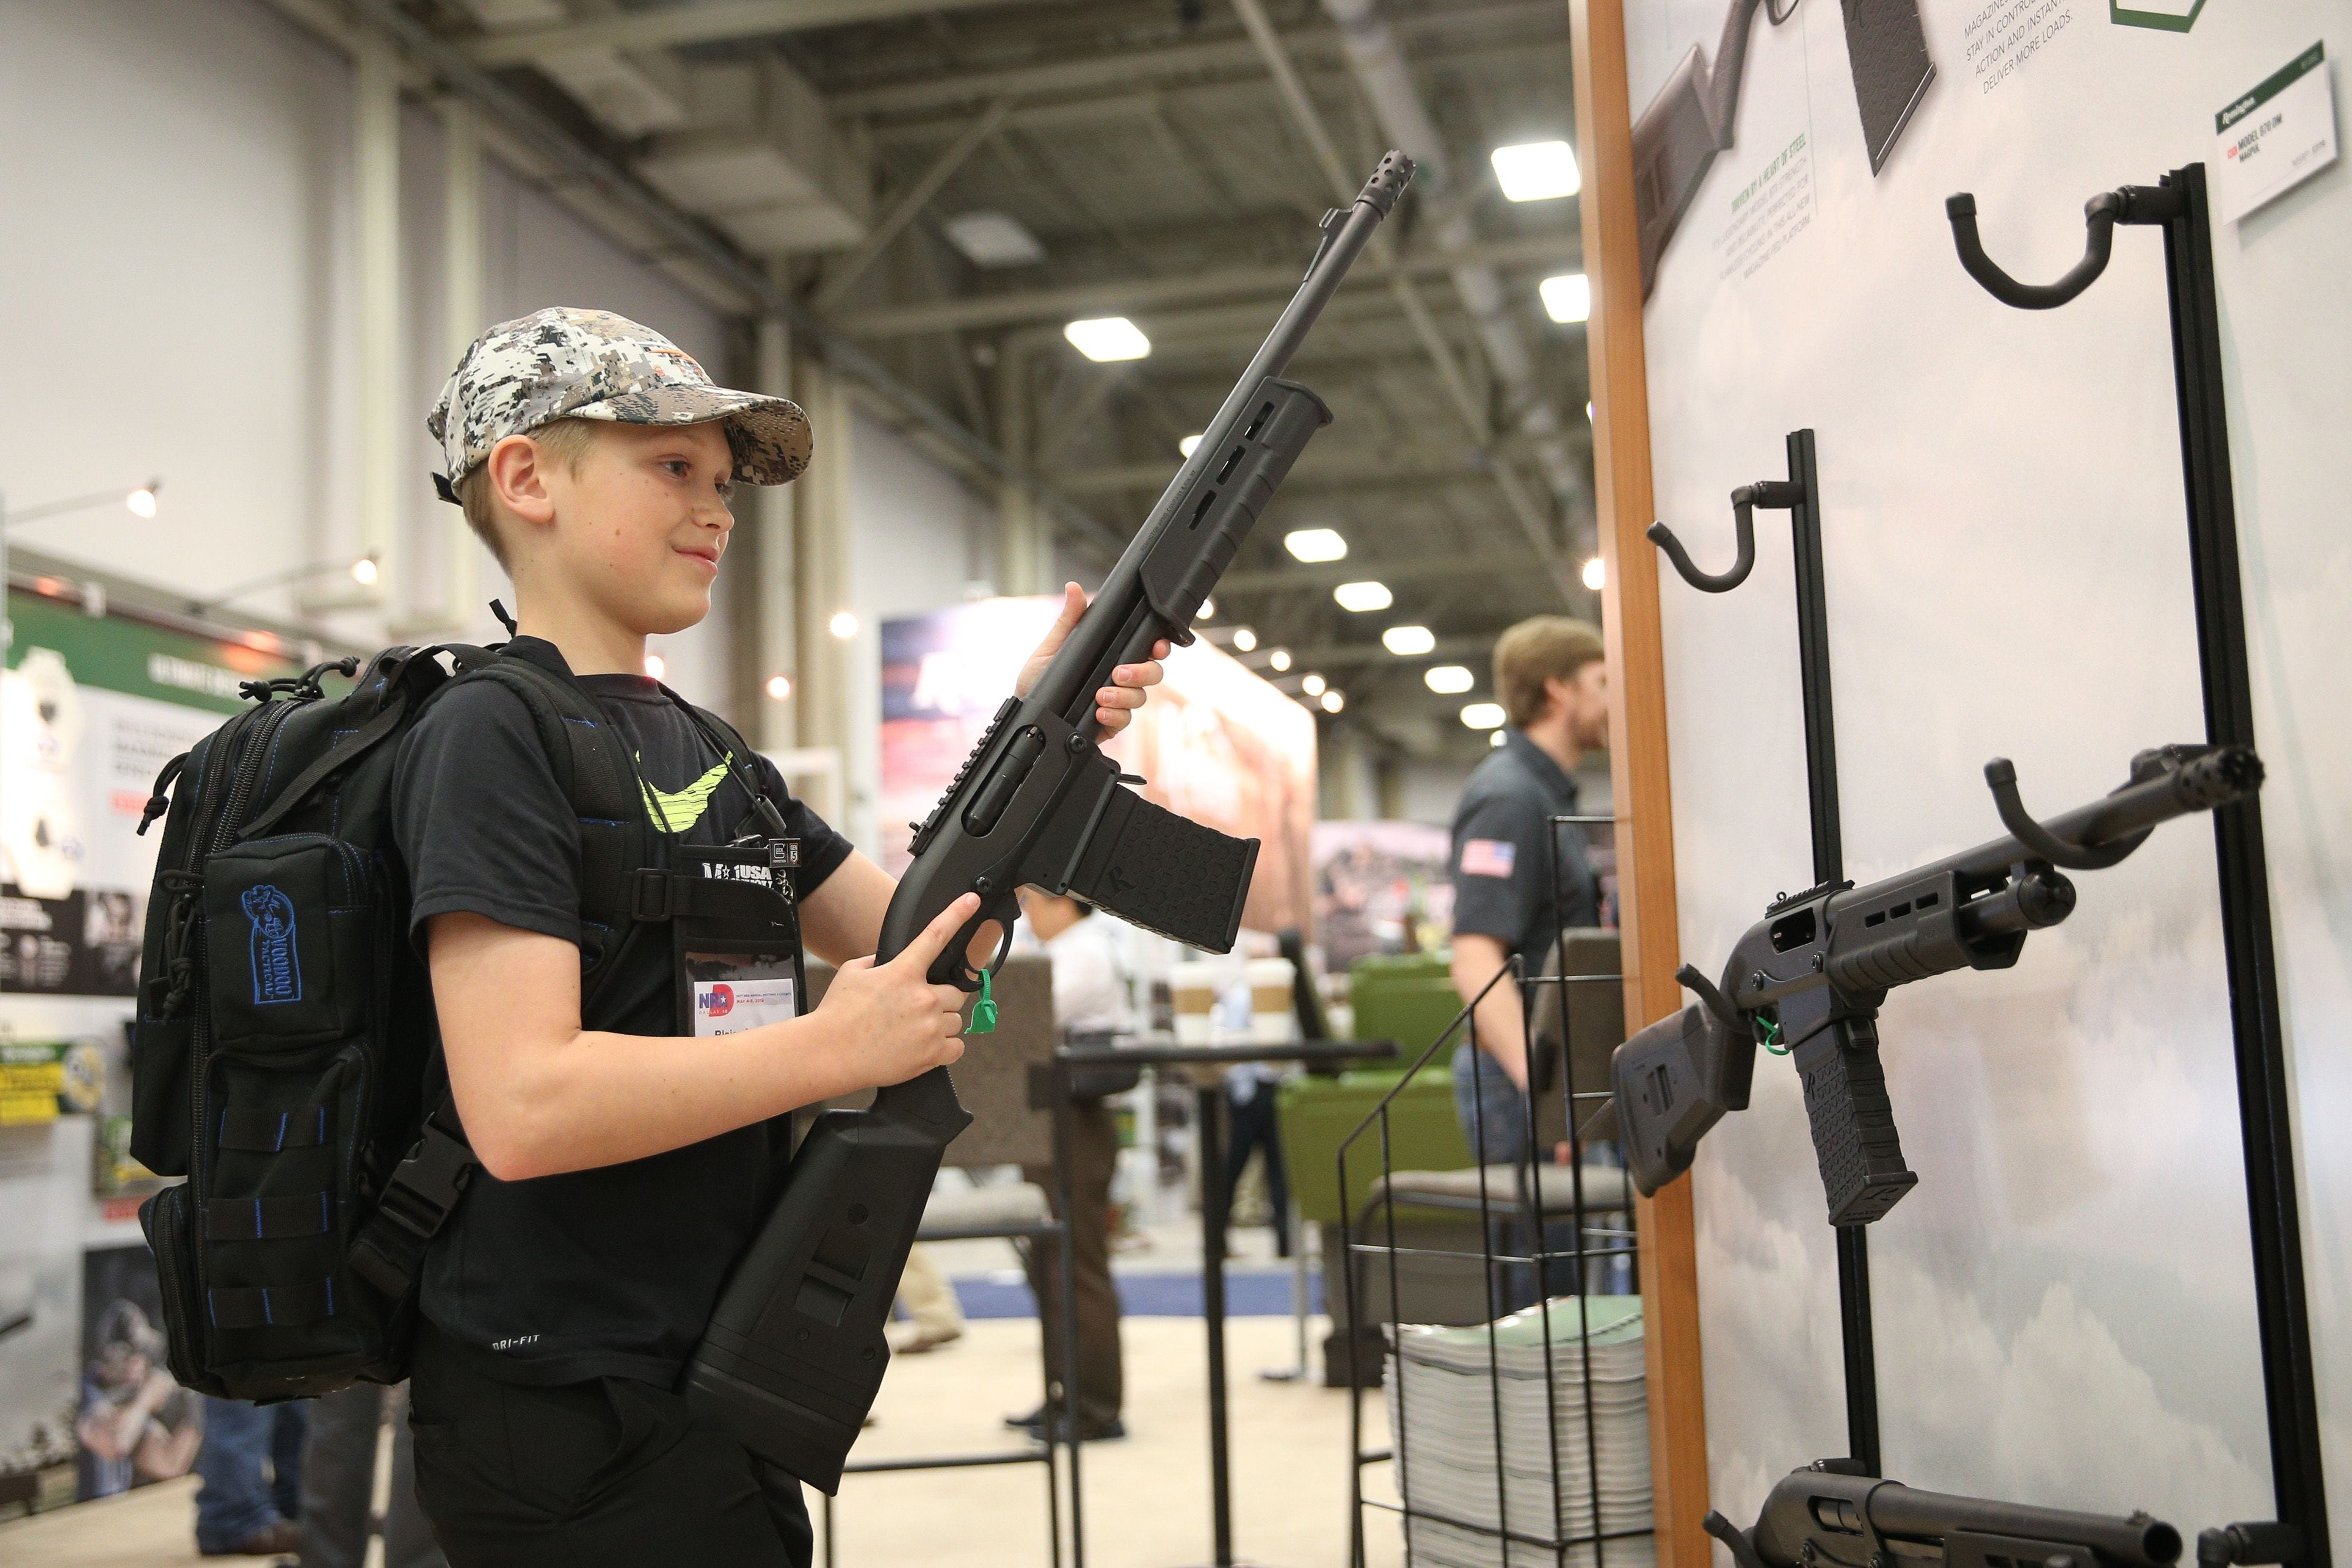 nra gun rights See spending on lobbying and contributions from gun control and gun rights groups to members of congress, as well as current nra data the latest school shooting in.